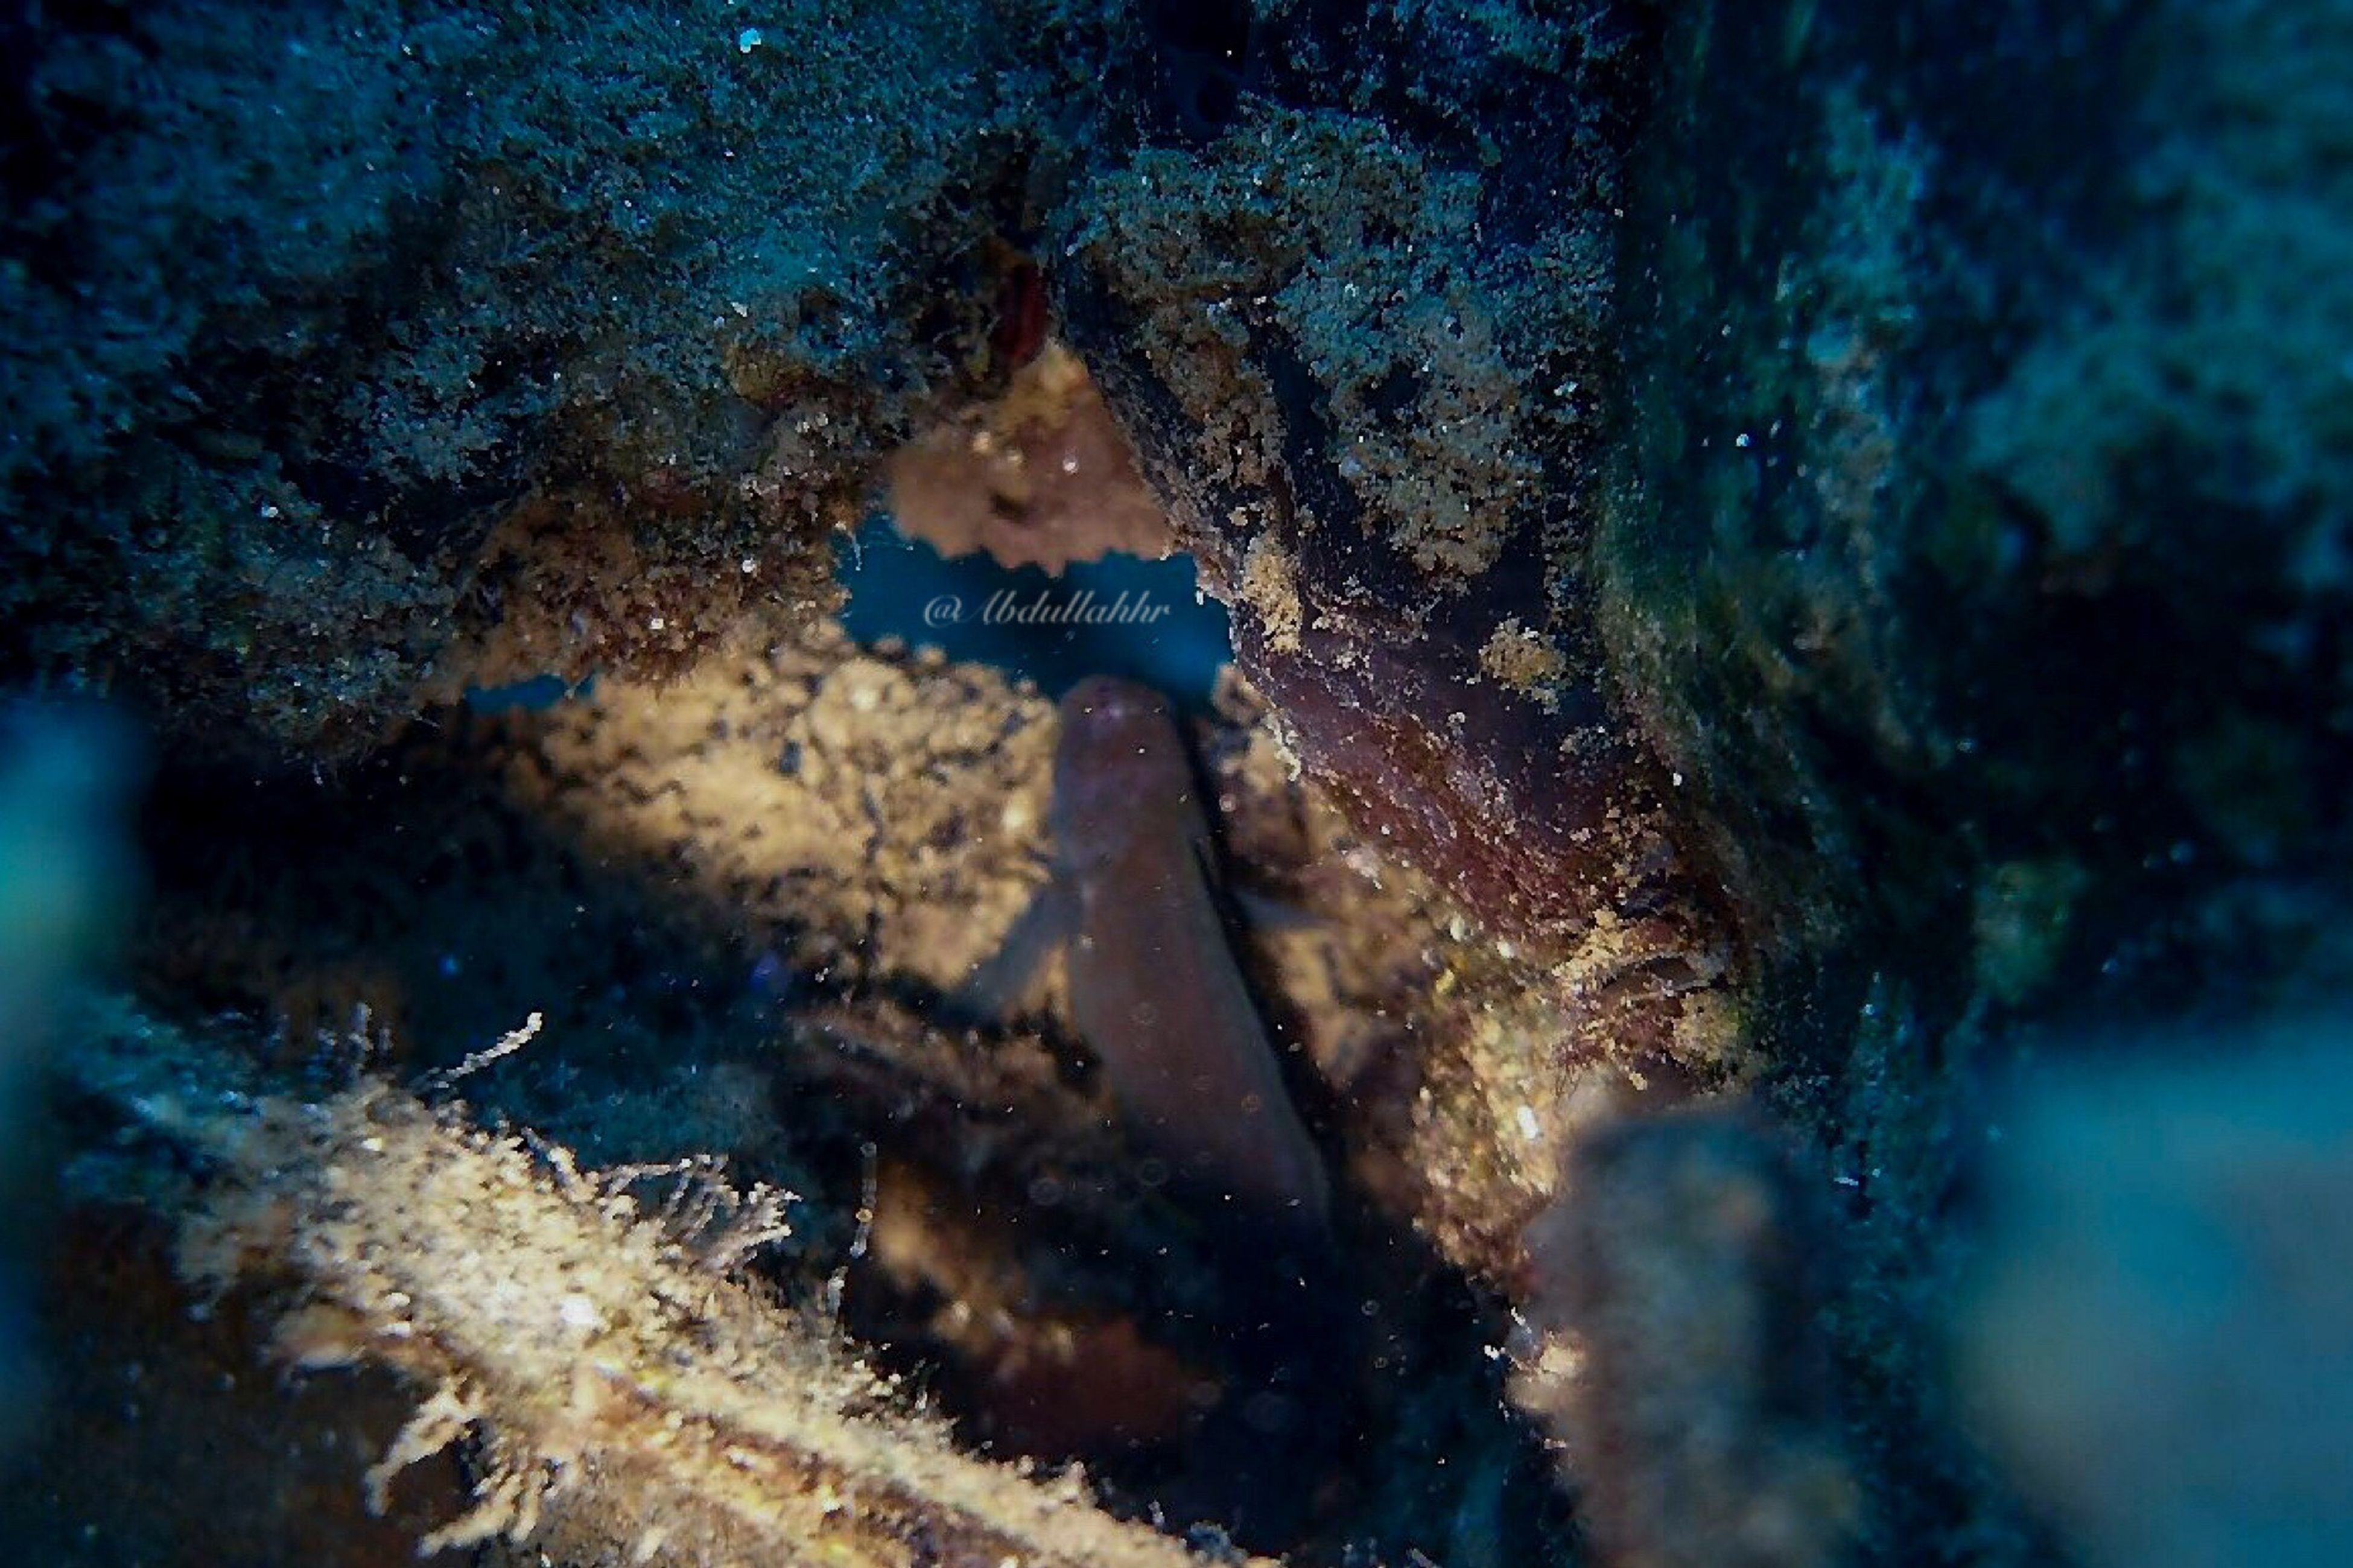 undersea, underwater, sea, coral, sea life, nature, scuba diving, one animal, water, swimming, close-up, one person, day, eyesight, outdoors, people